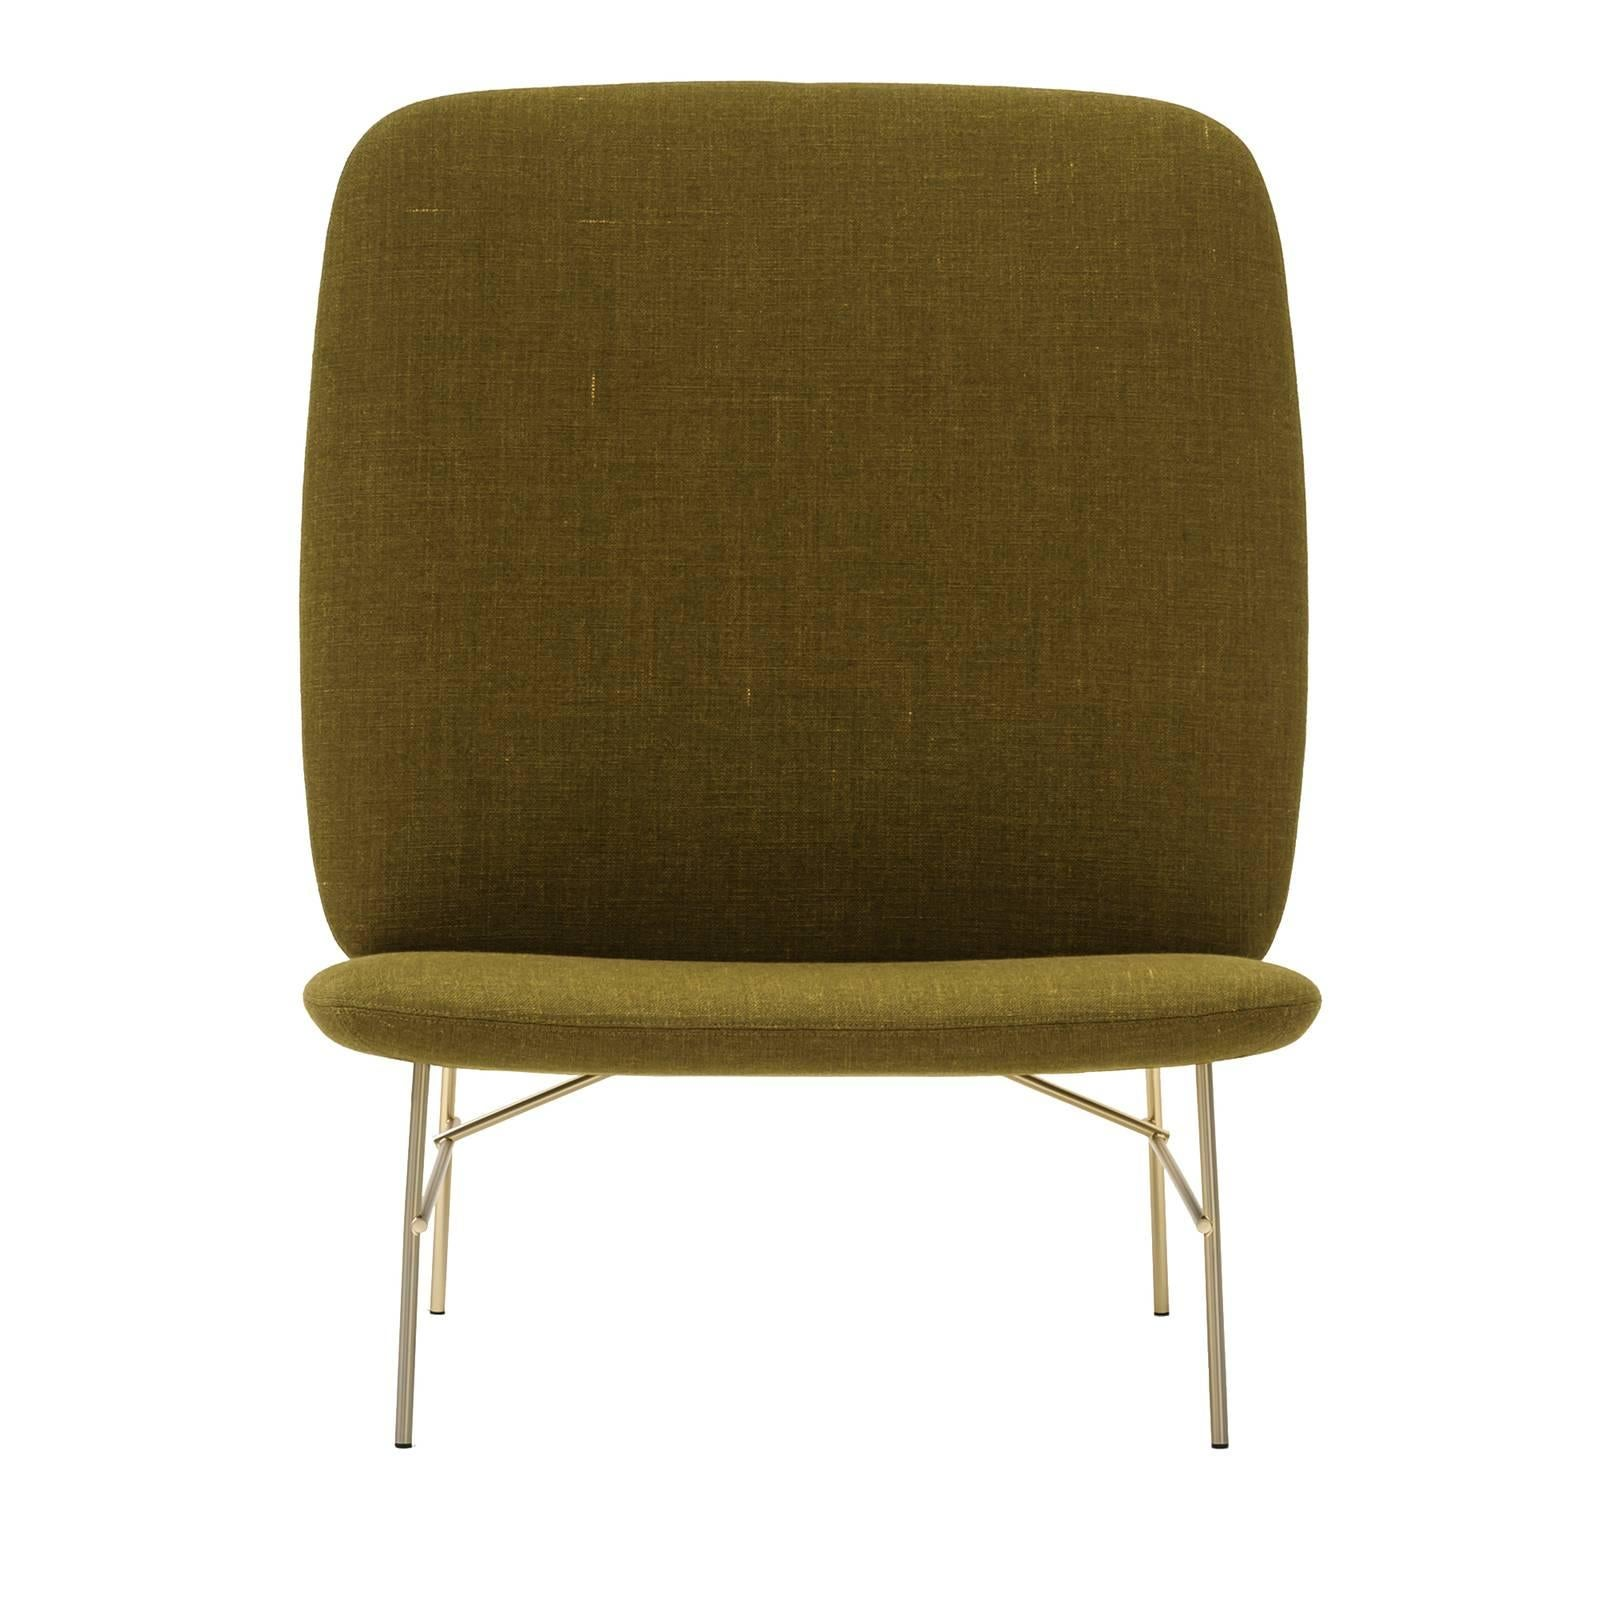 Kelly H Green Accent Chair By Claesson Koivisto Rune For Sale